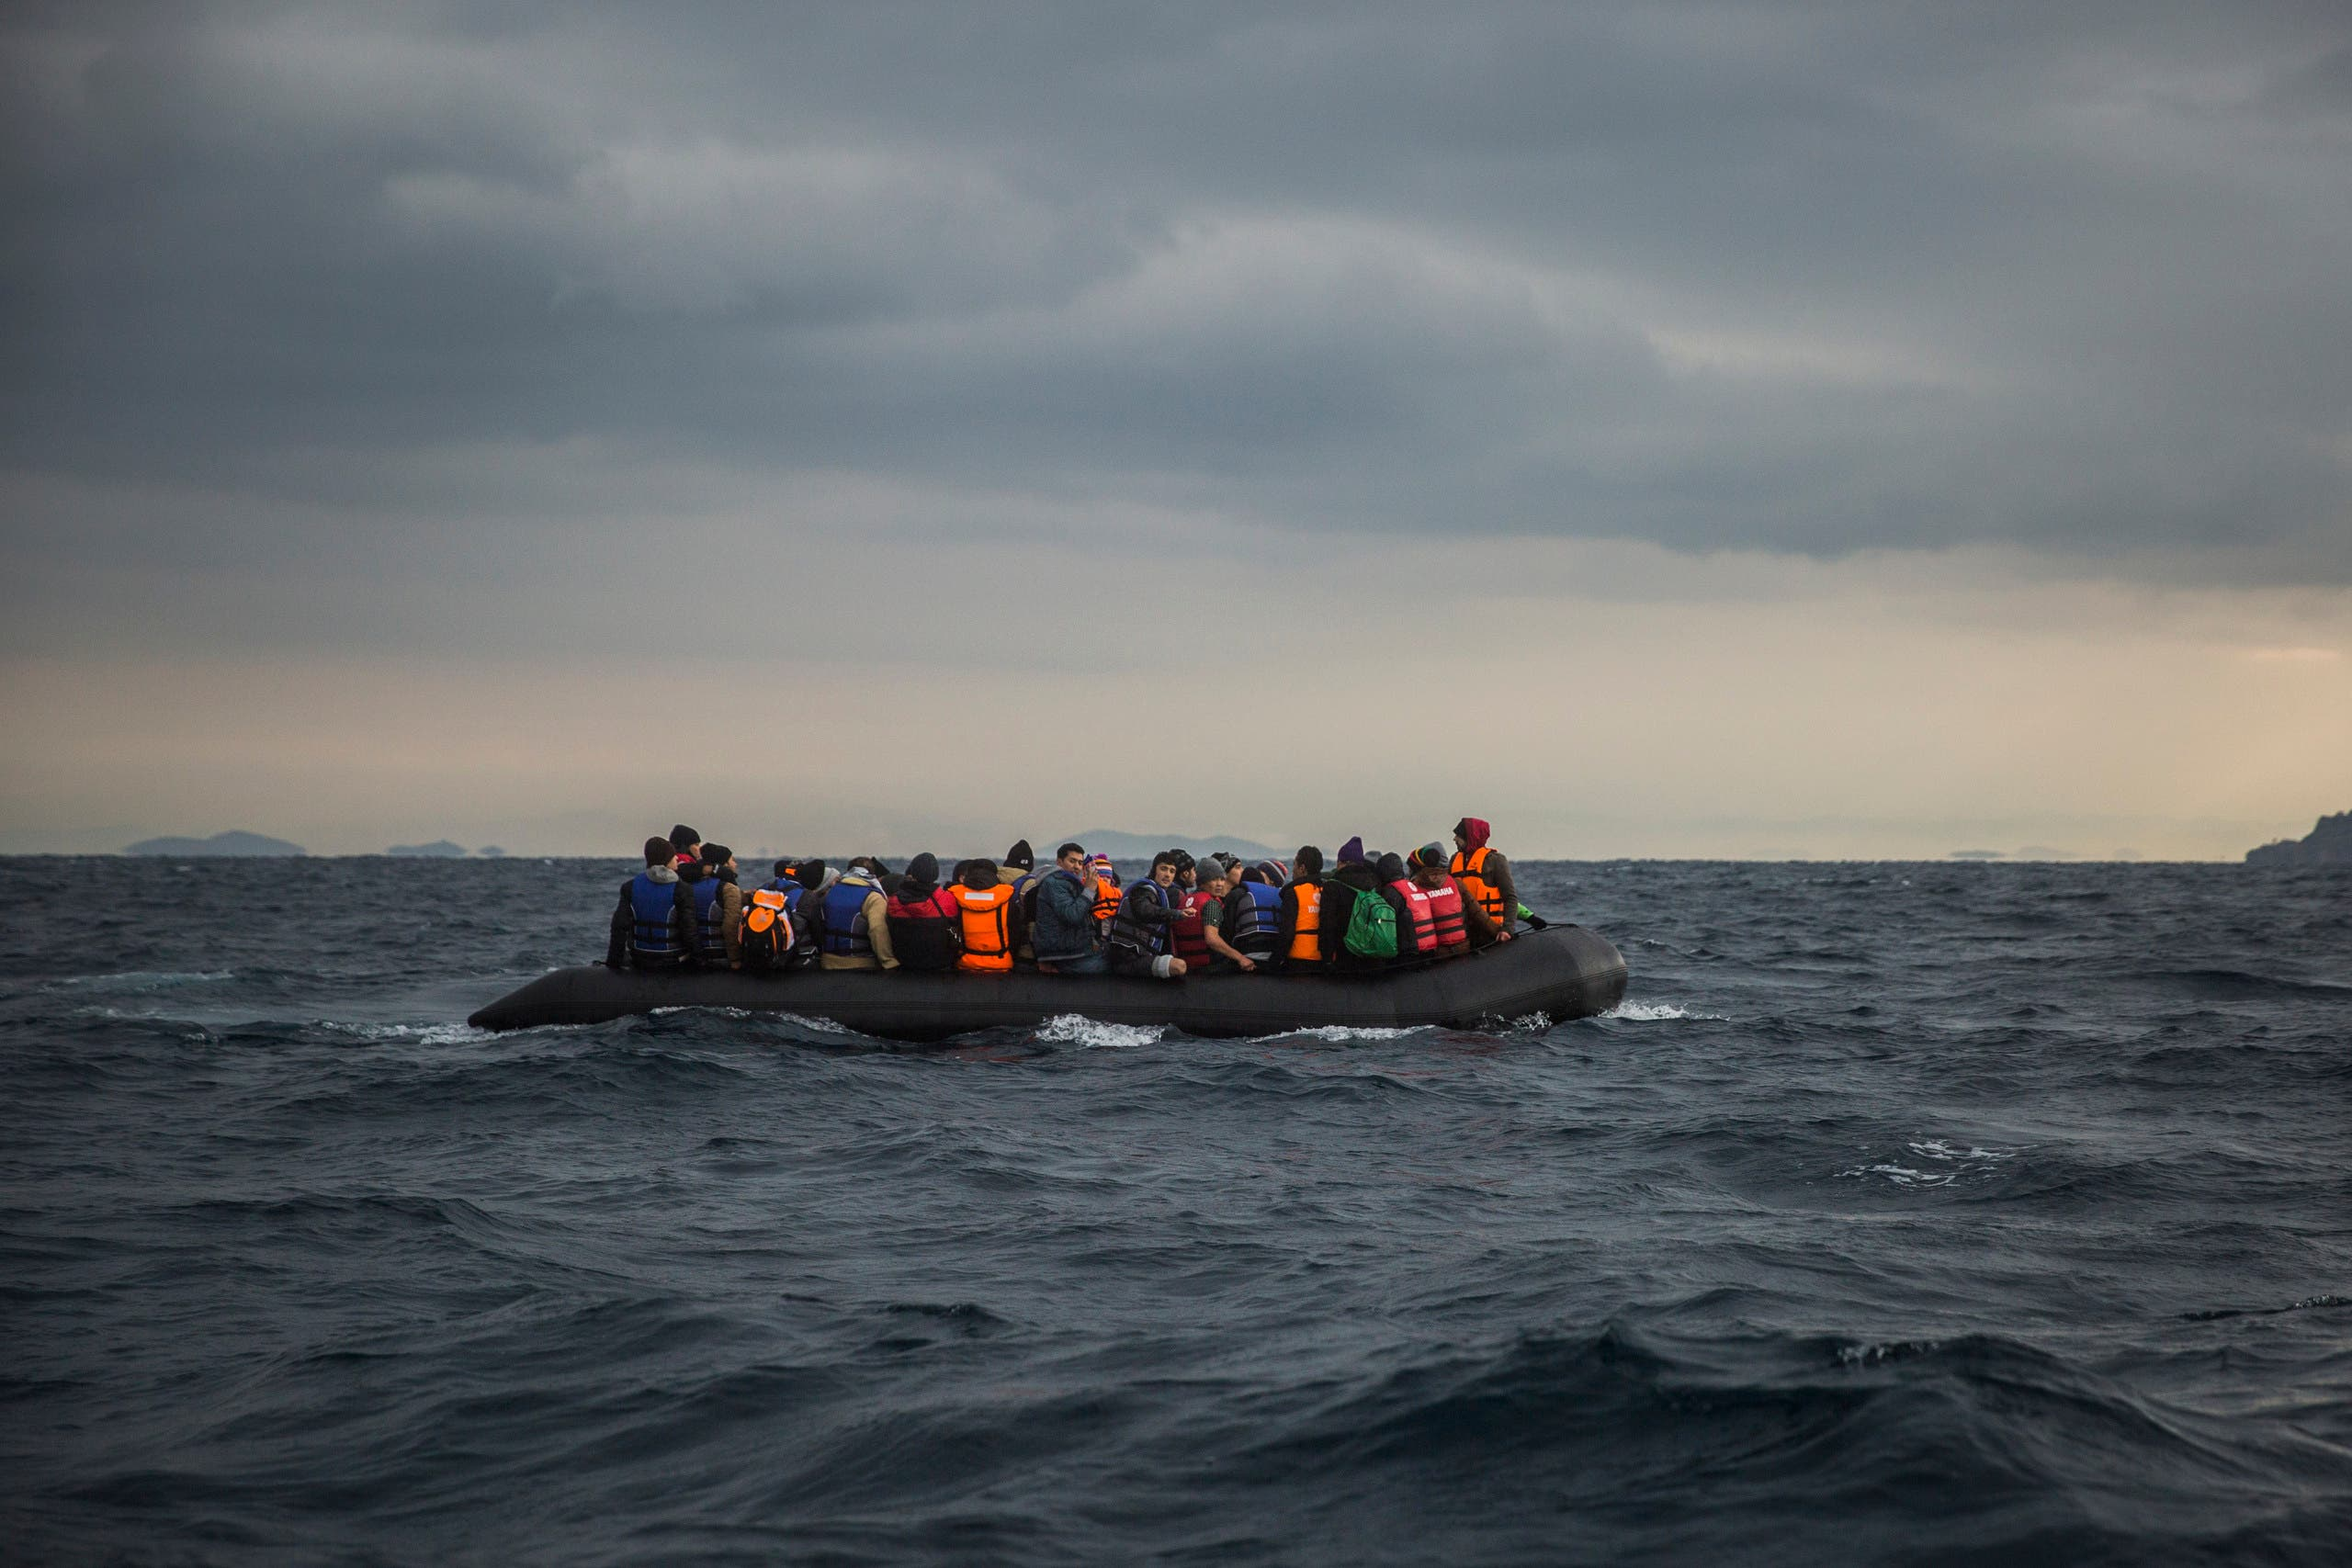 A file photo shows refugees and migrants onboard a dinghy approach the Greek island of Lesbos, after crossing the Aegean sea from Turkey. (AP/Santi Palacios)